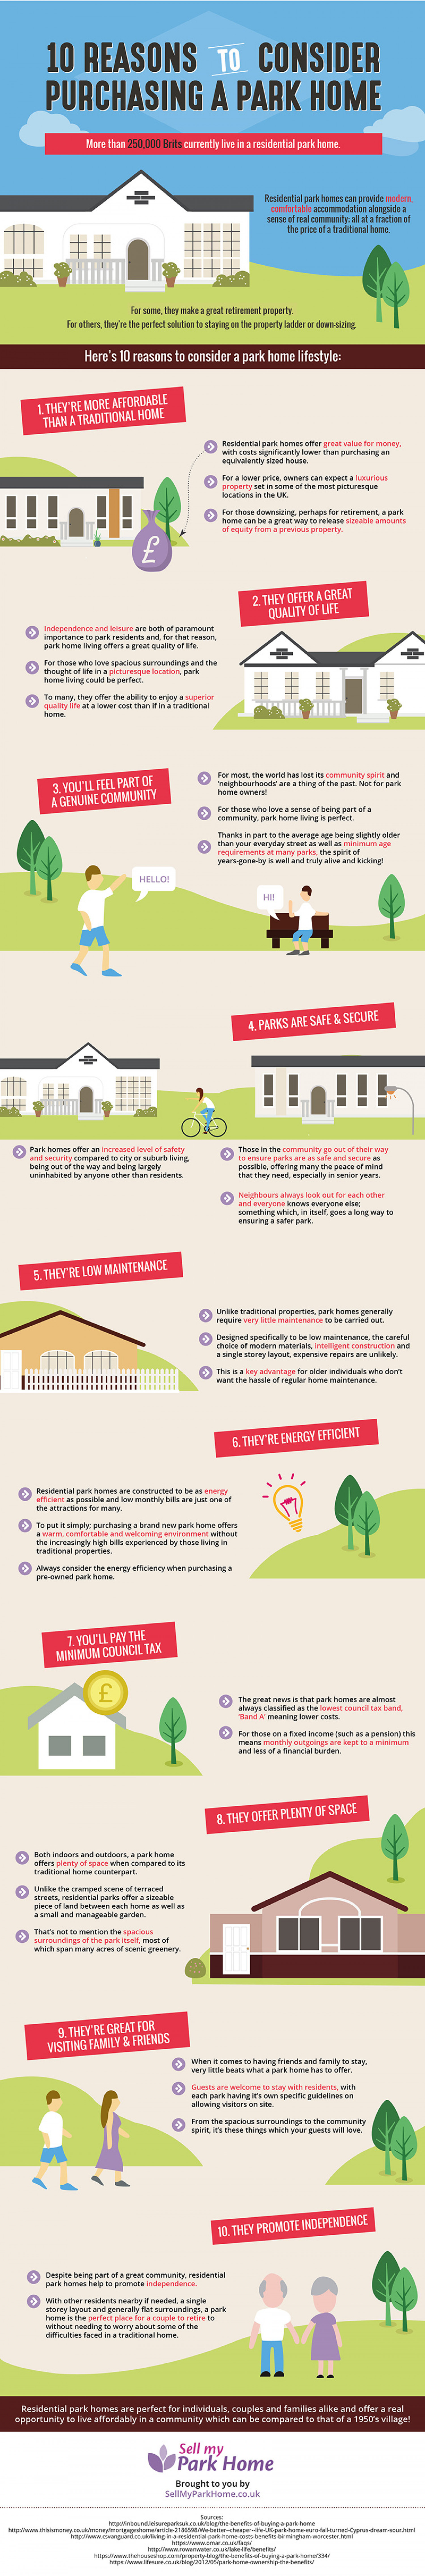 10 Reasons To Consider Purchasing A Park Home  Infographic